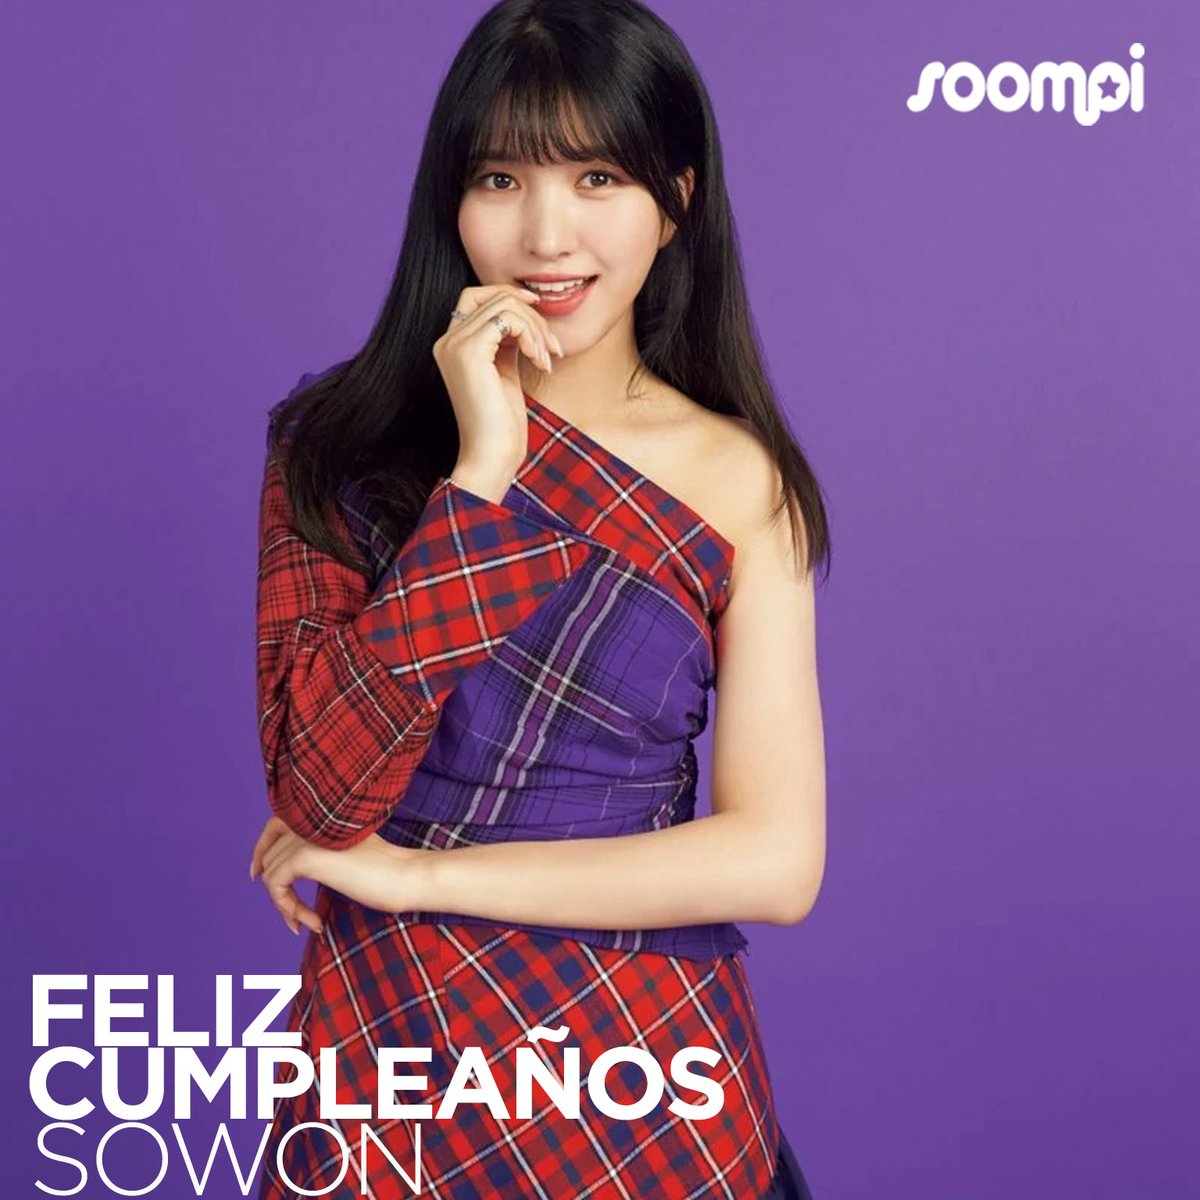 Soompi Spanish's photo on #HappySowonDay